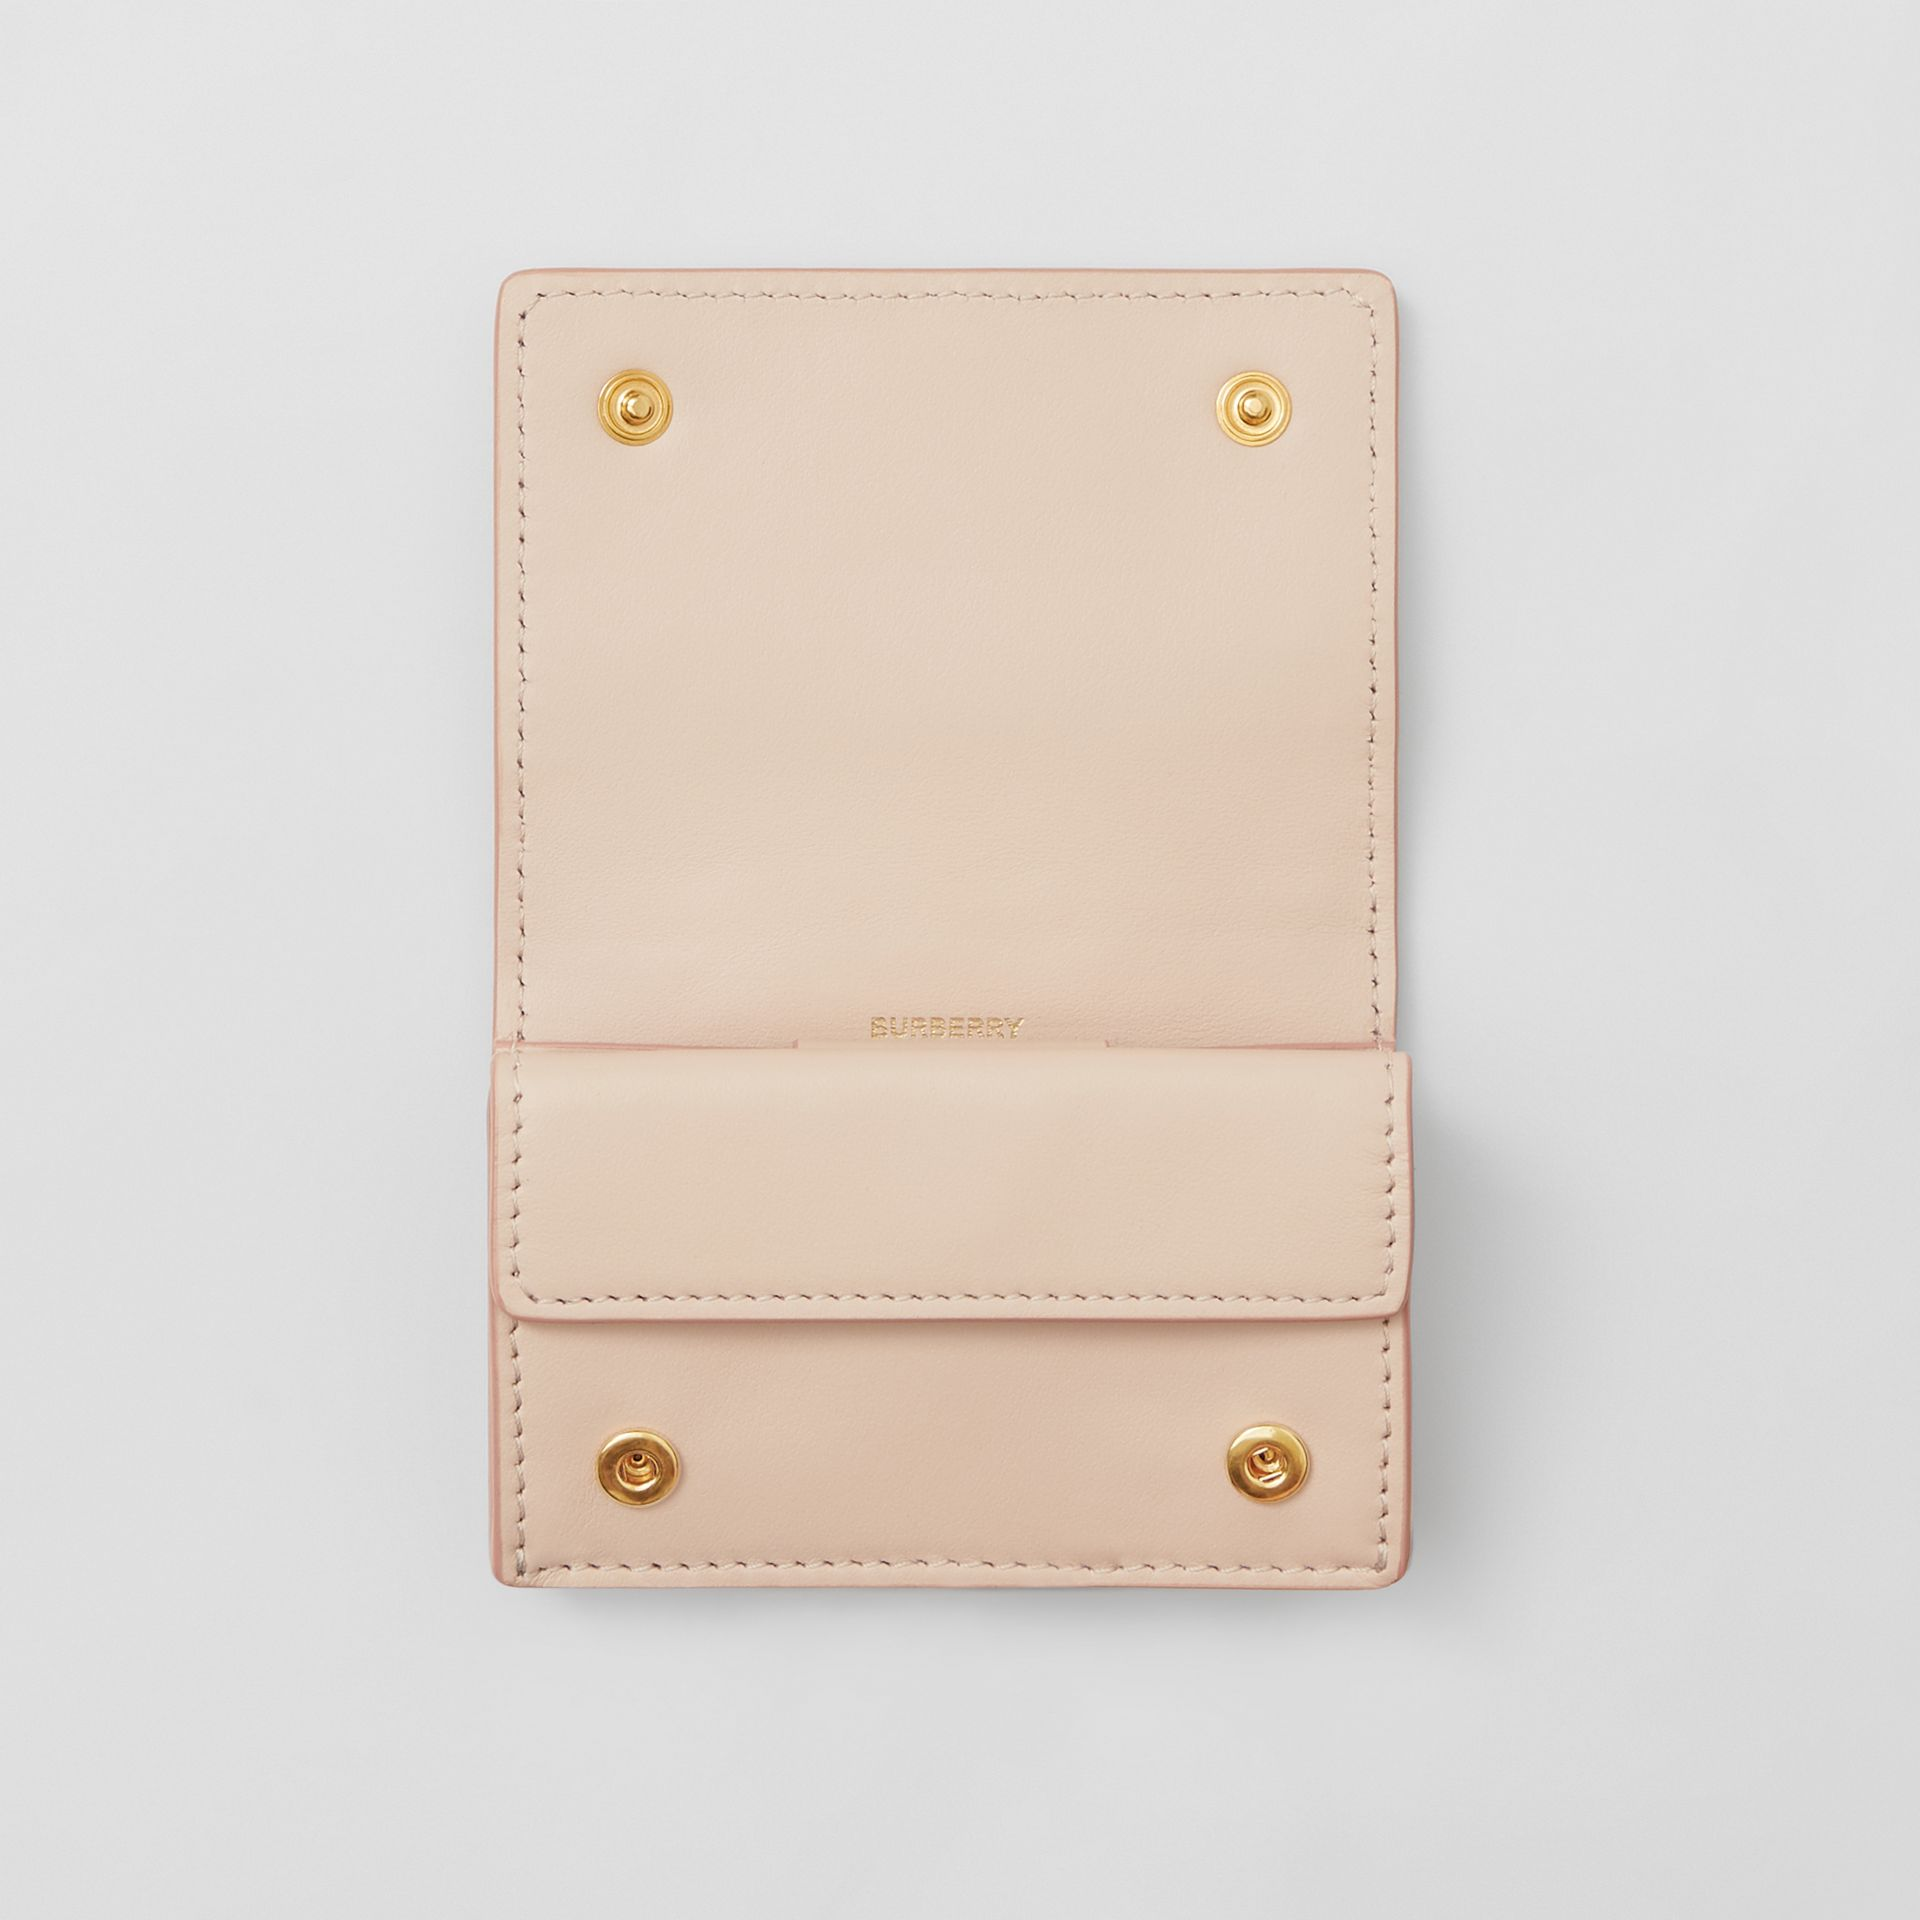 Porte-cartes en cuir Monogram (Beige Rose) | Burberry - photo de la galerie 3